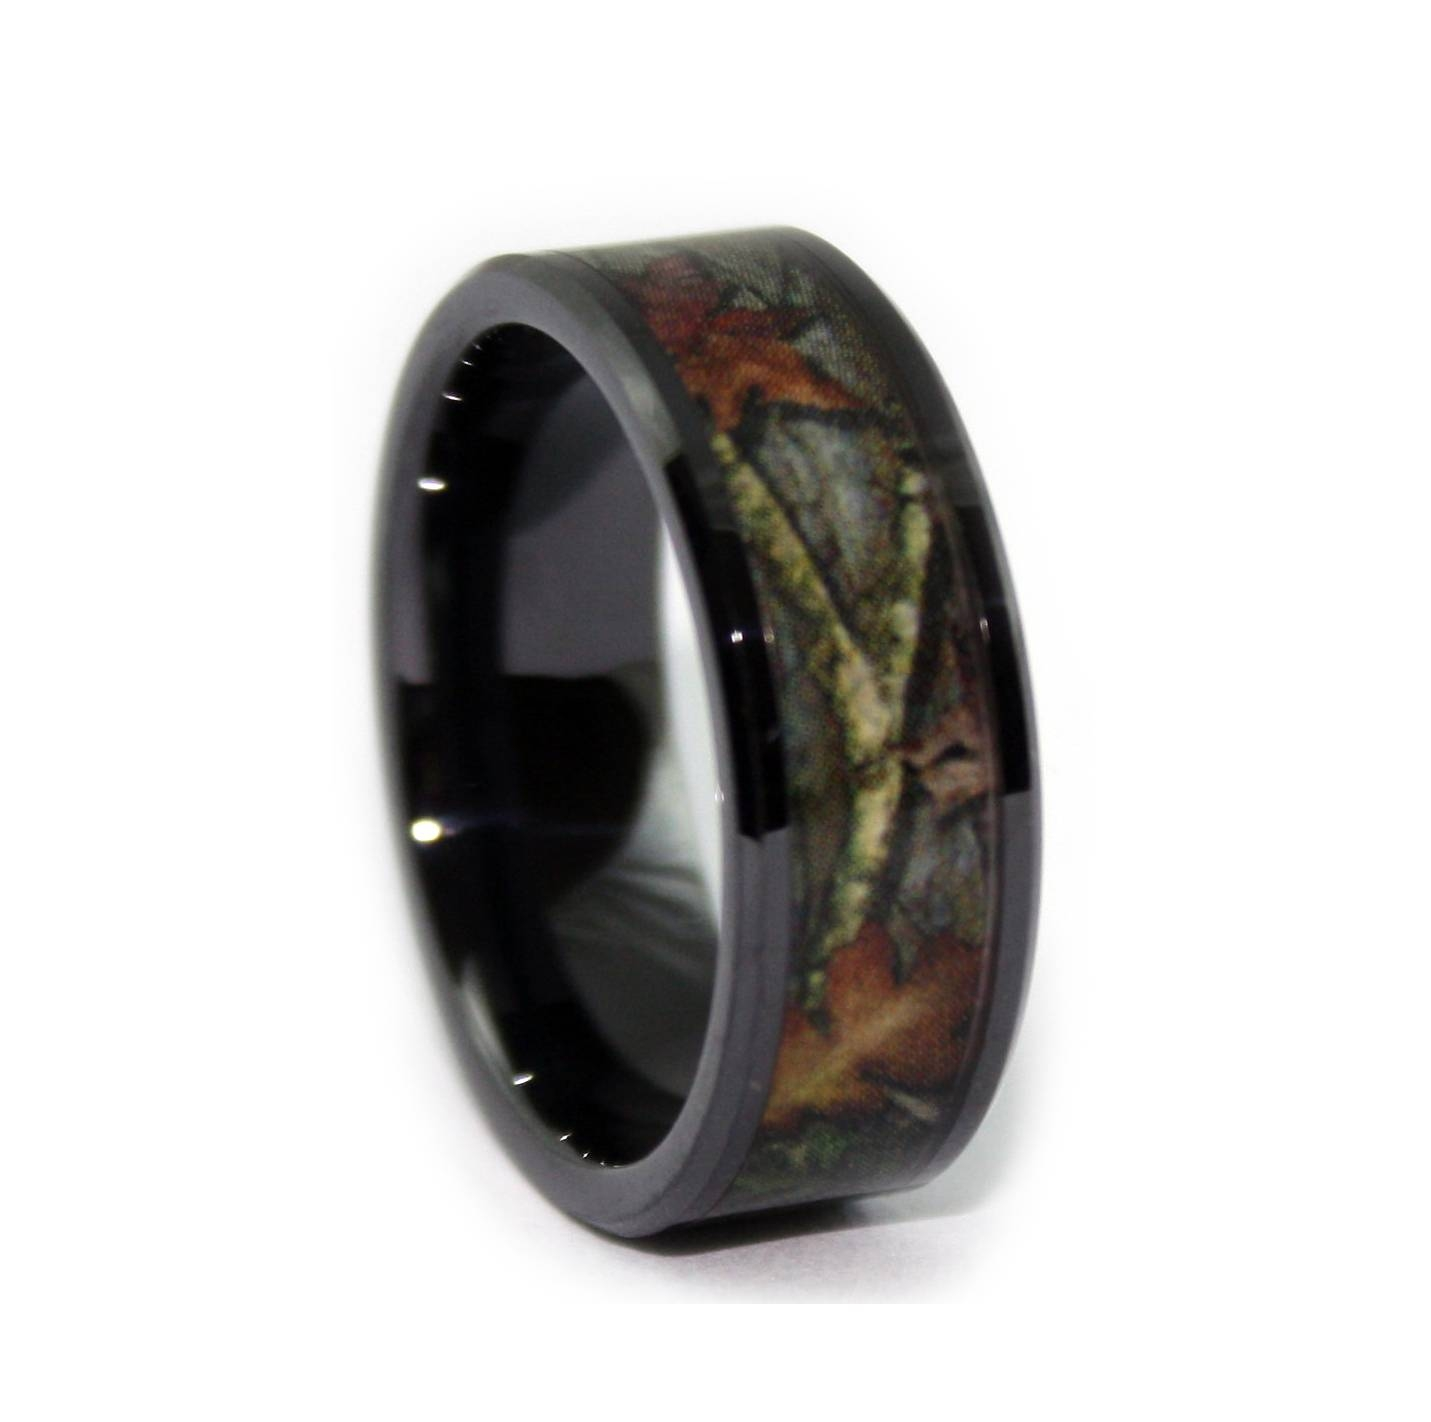 Camo Wedding Rings – Black Ceramic Ring – Camouflage Band Regarding Titanium Camo Wedding Rings (View 3 of 15)